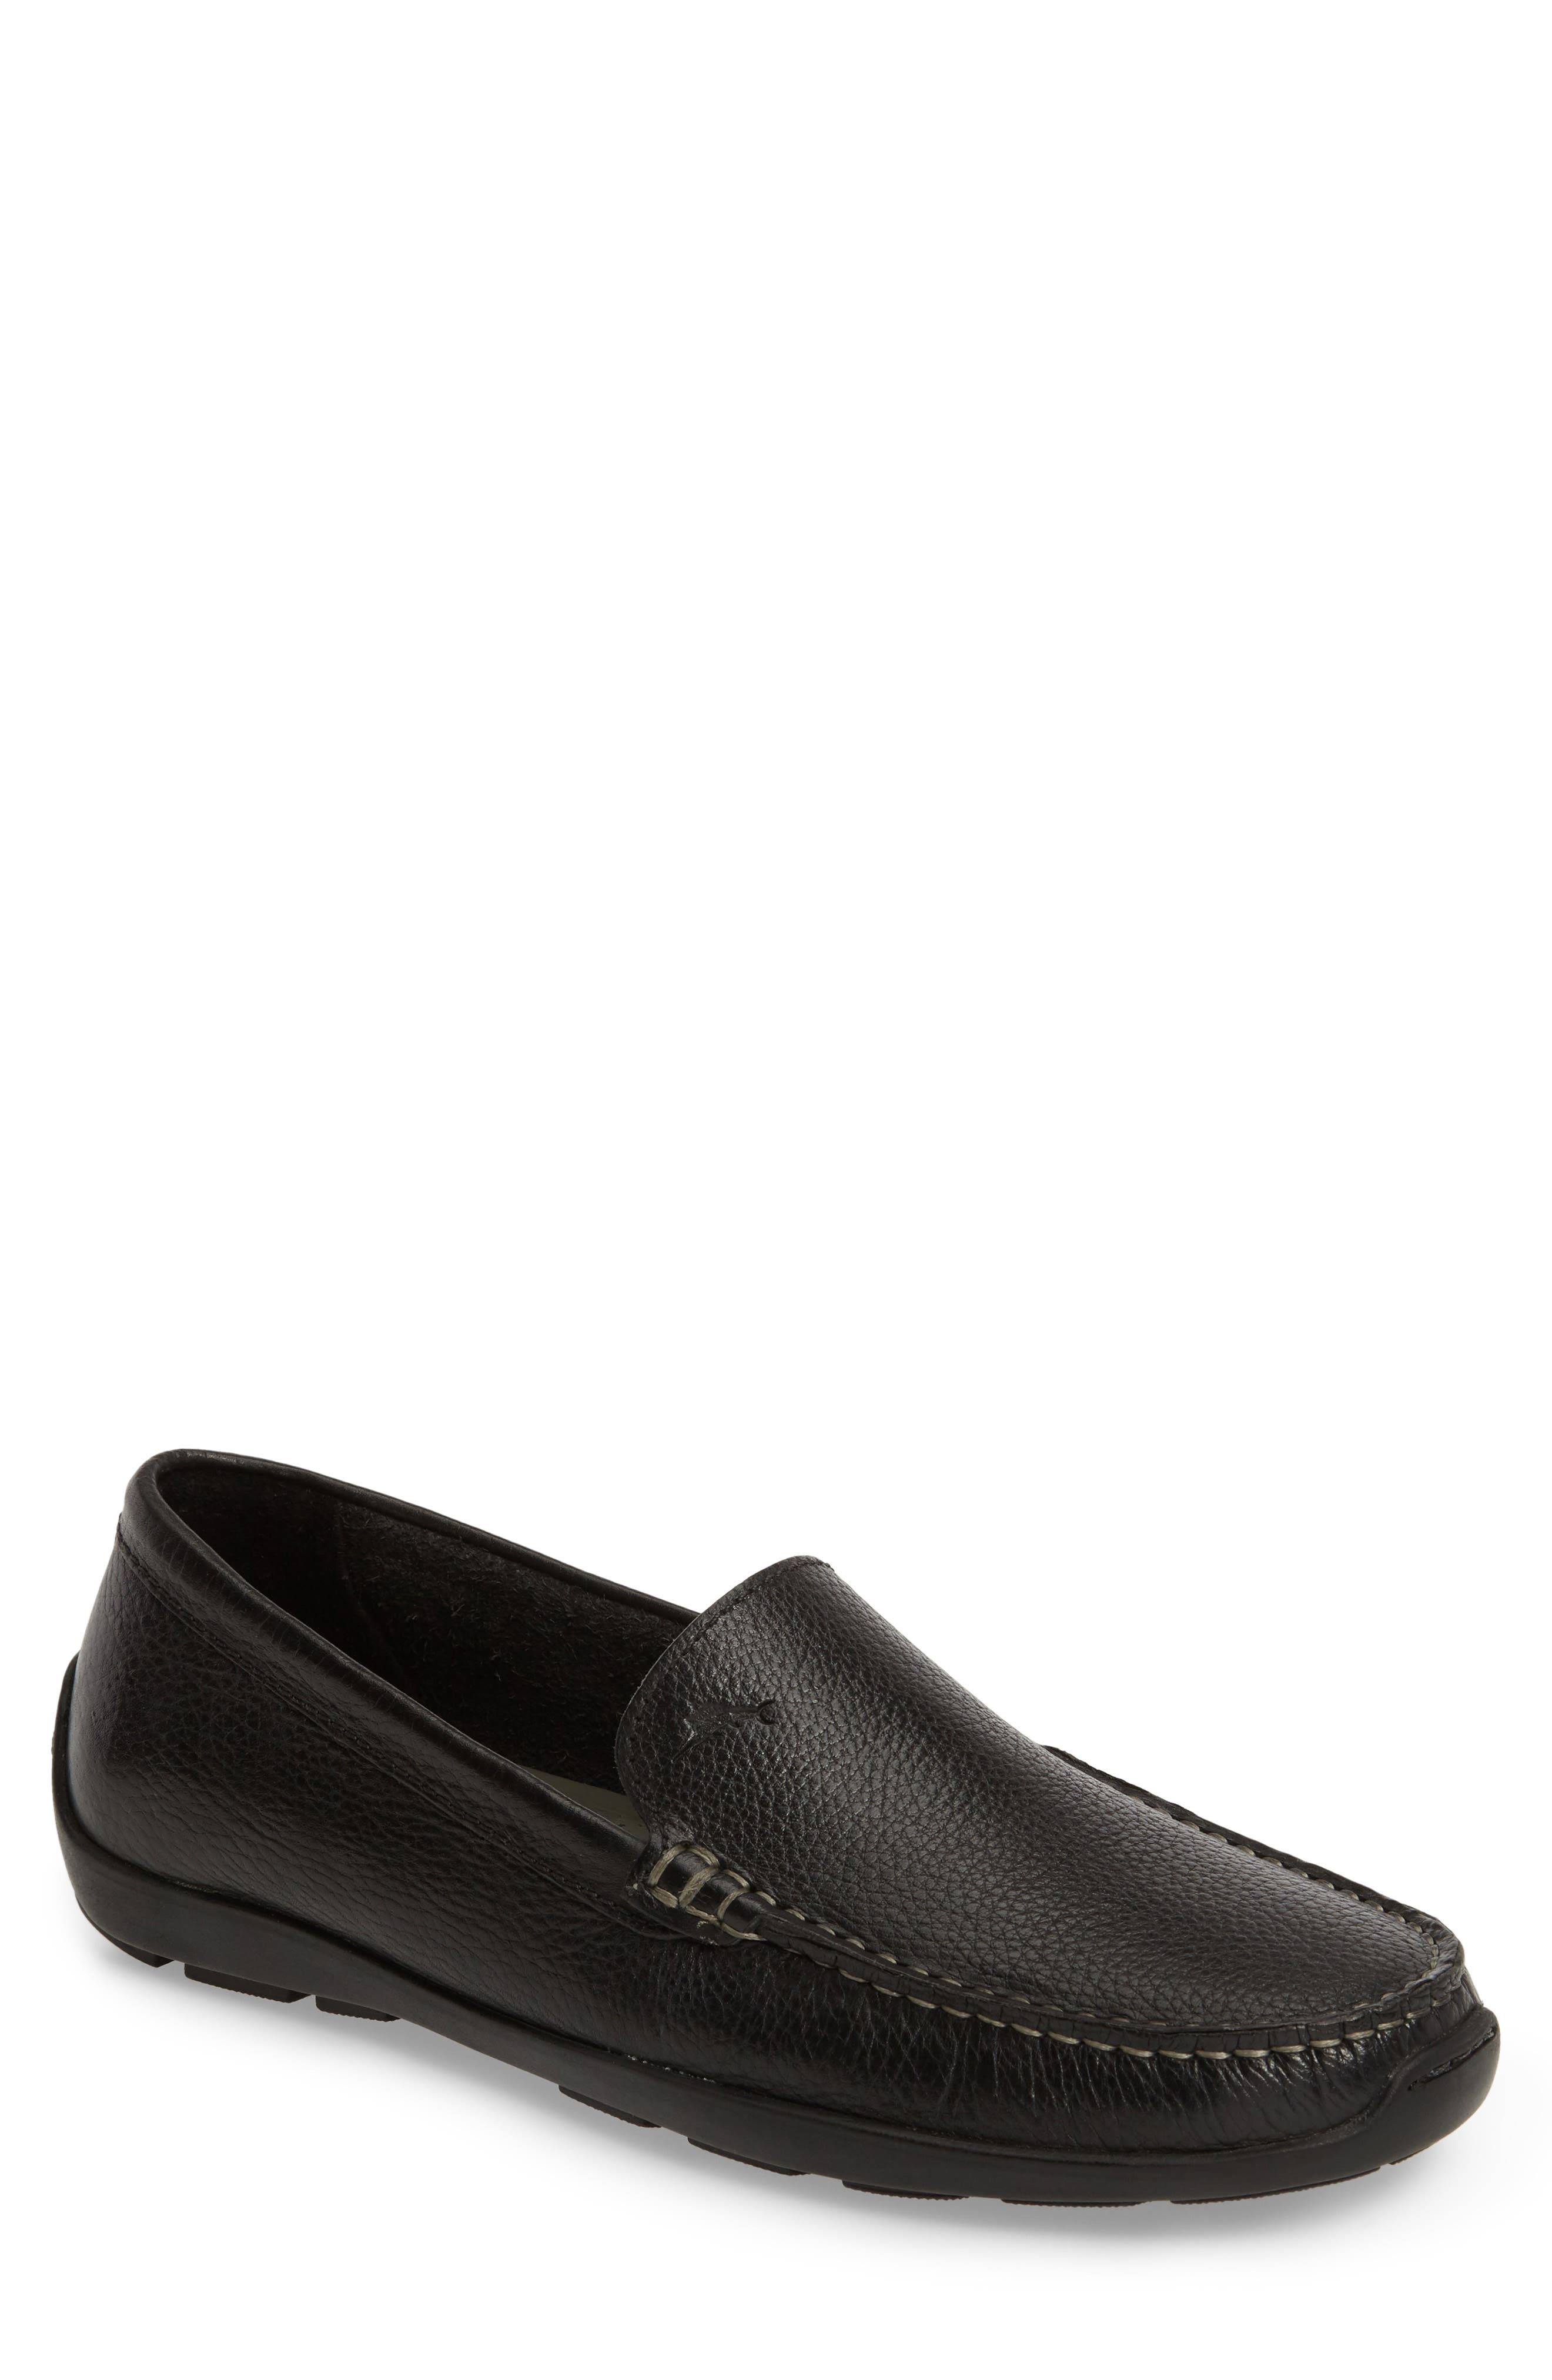 Orion Venetian Loafer,                         Main,                         color, BLACK LEATHER